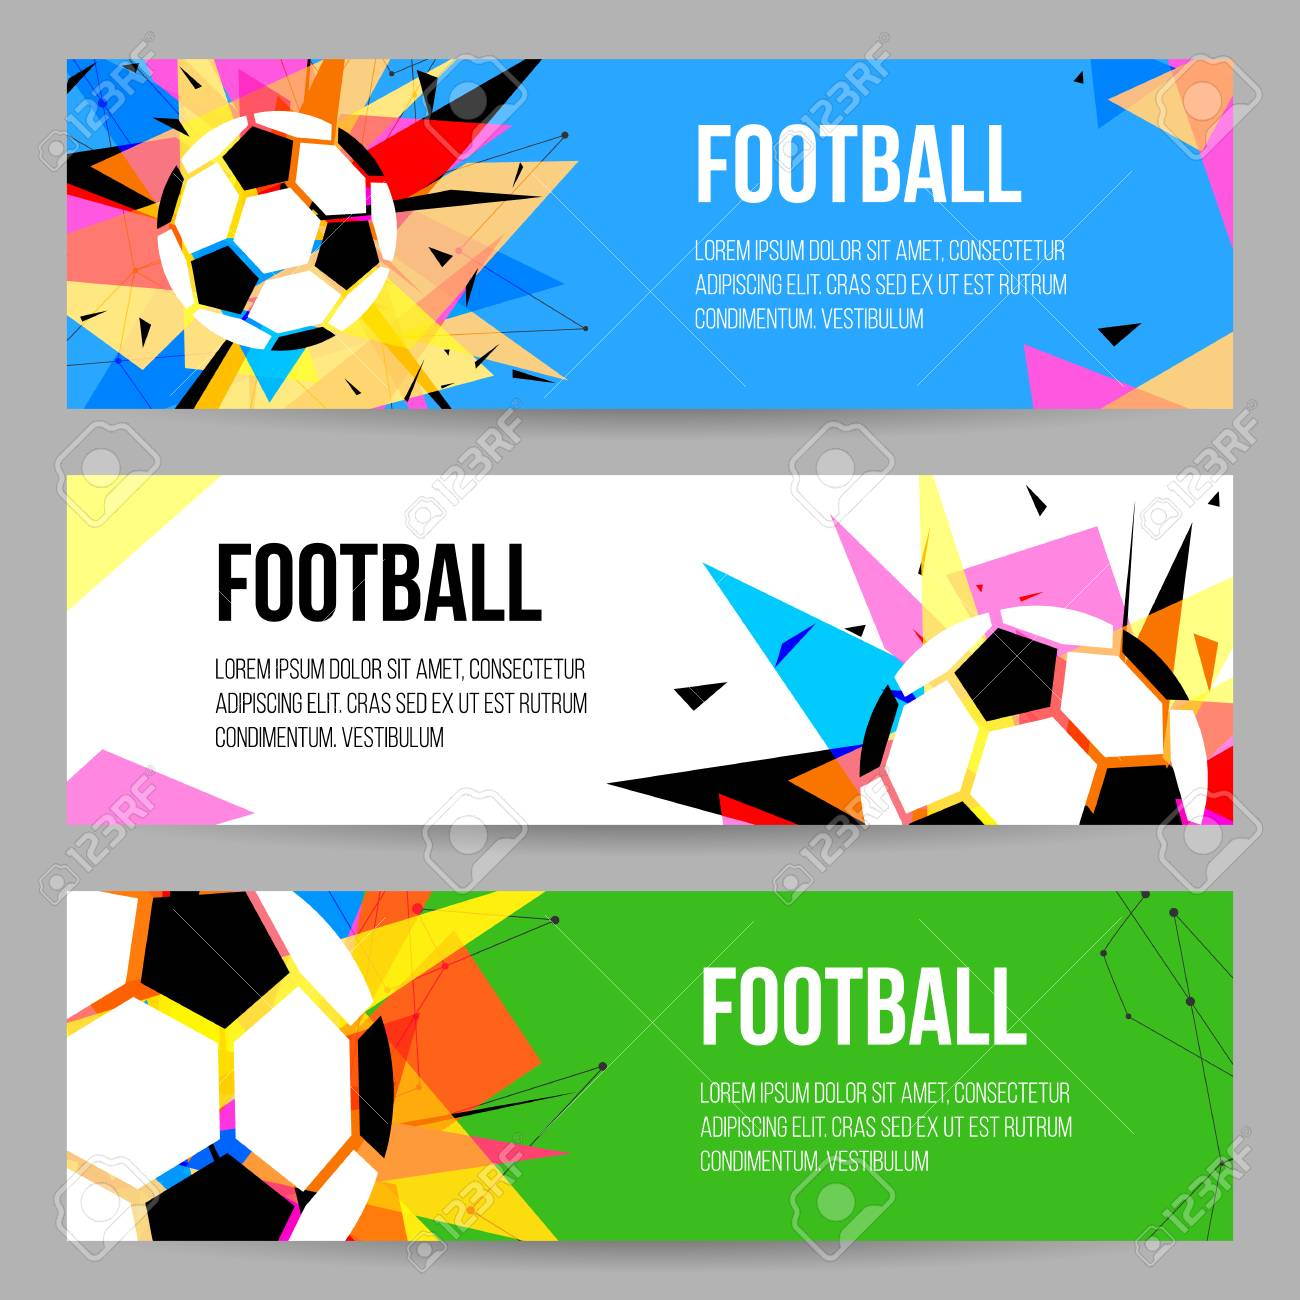 Football Tournament Banner Templates Set Soccer Championship Royalty Free Cliparts Vectors And Stock Illustration Image 91263993